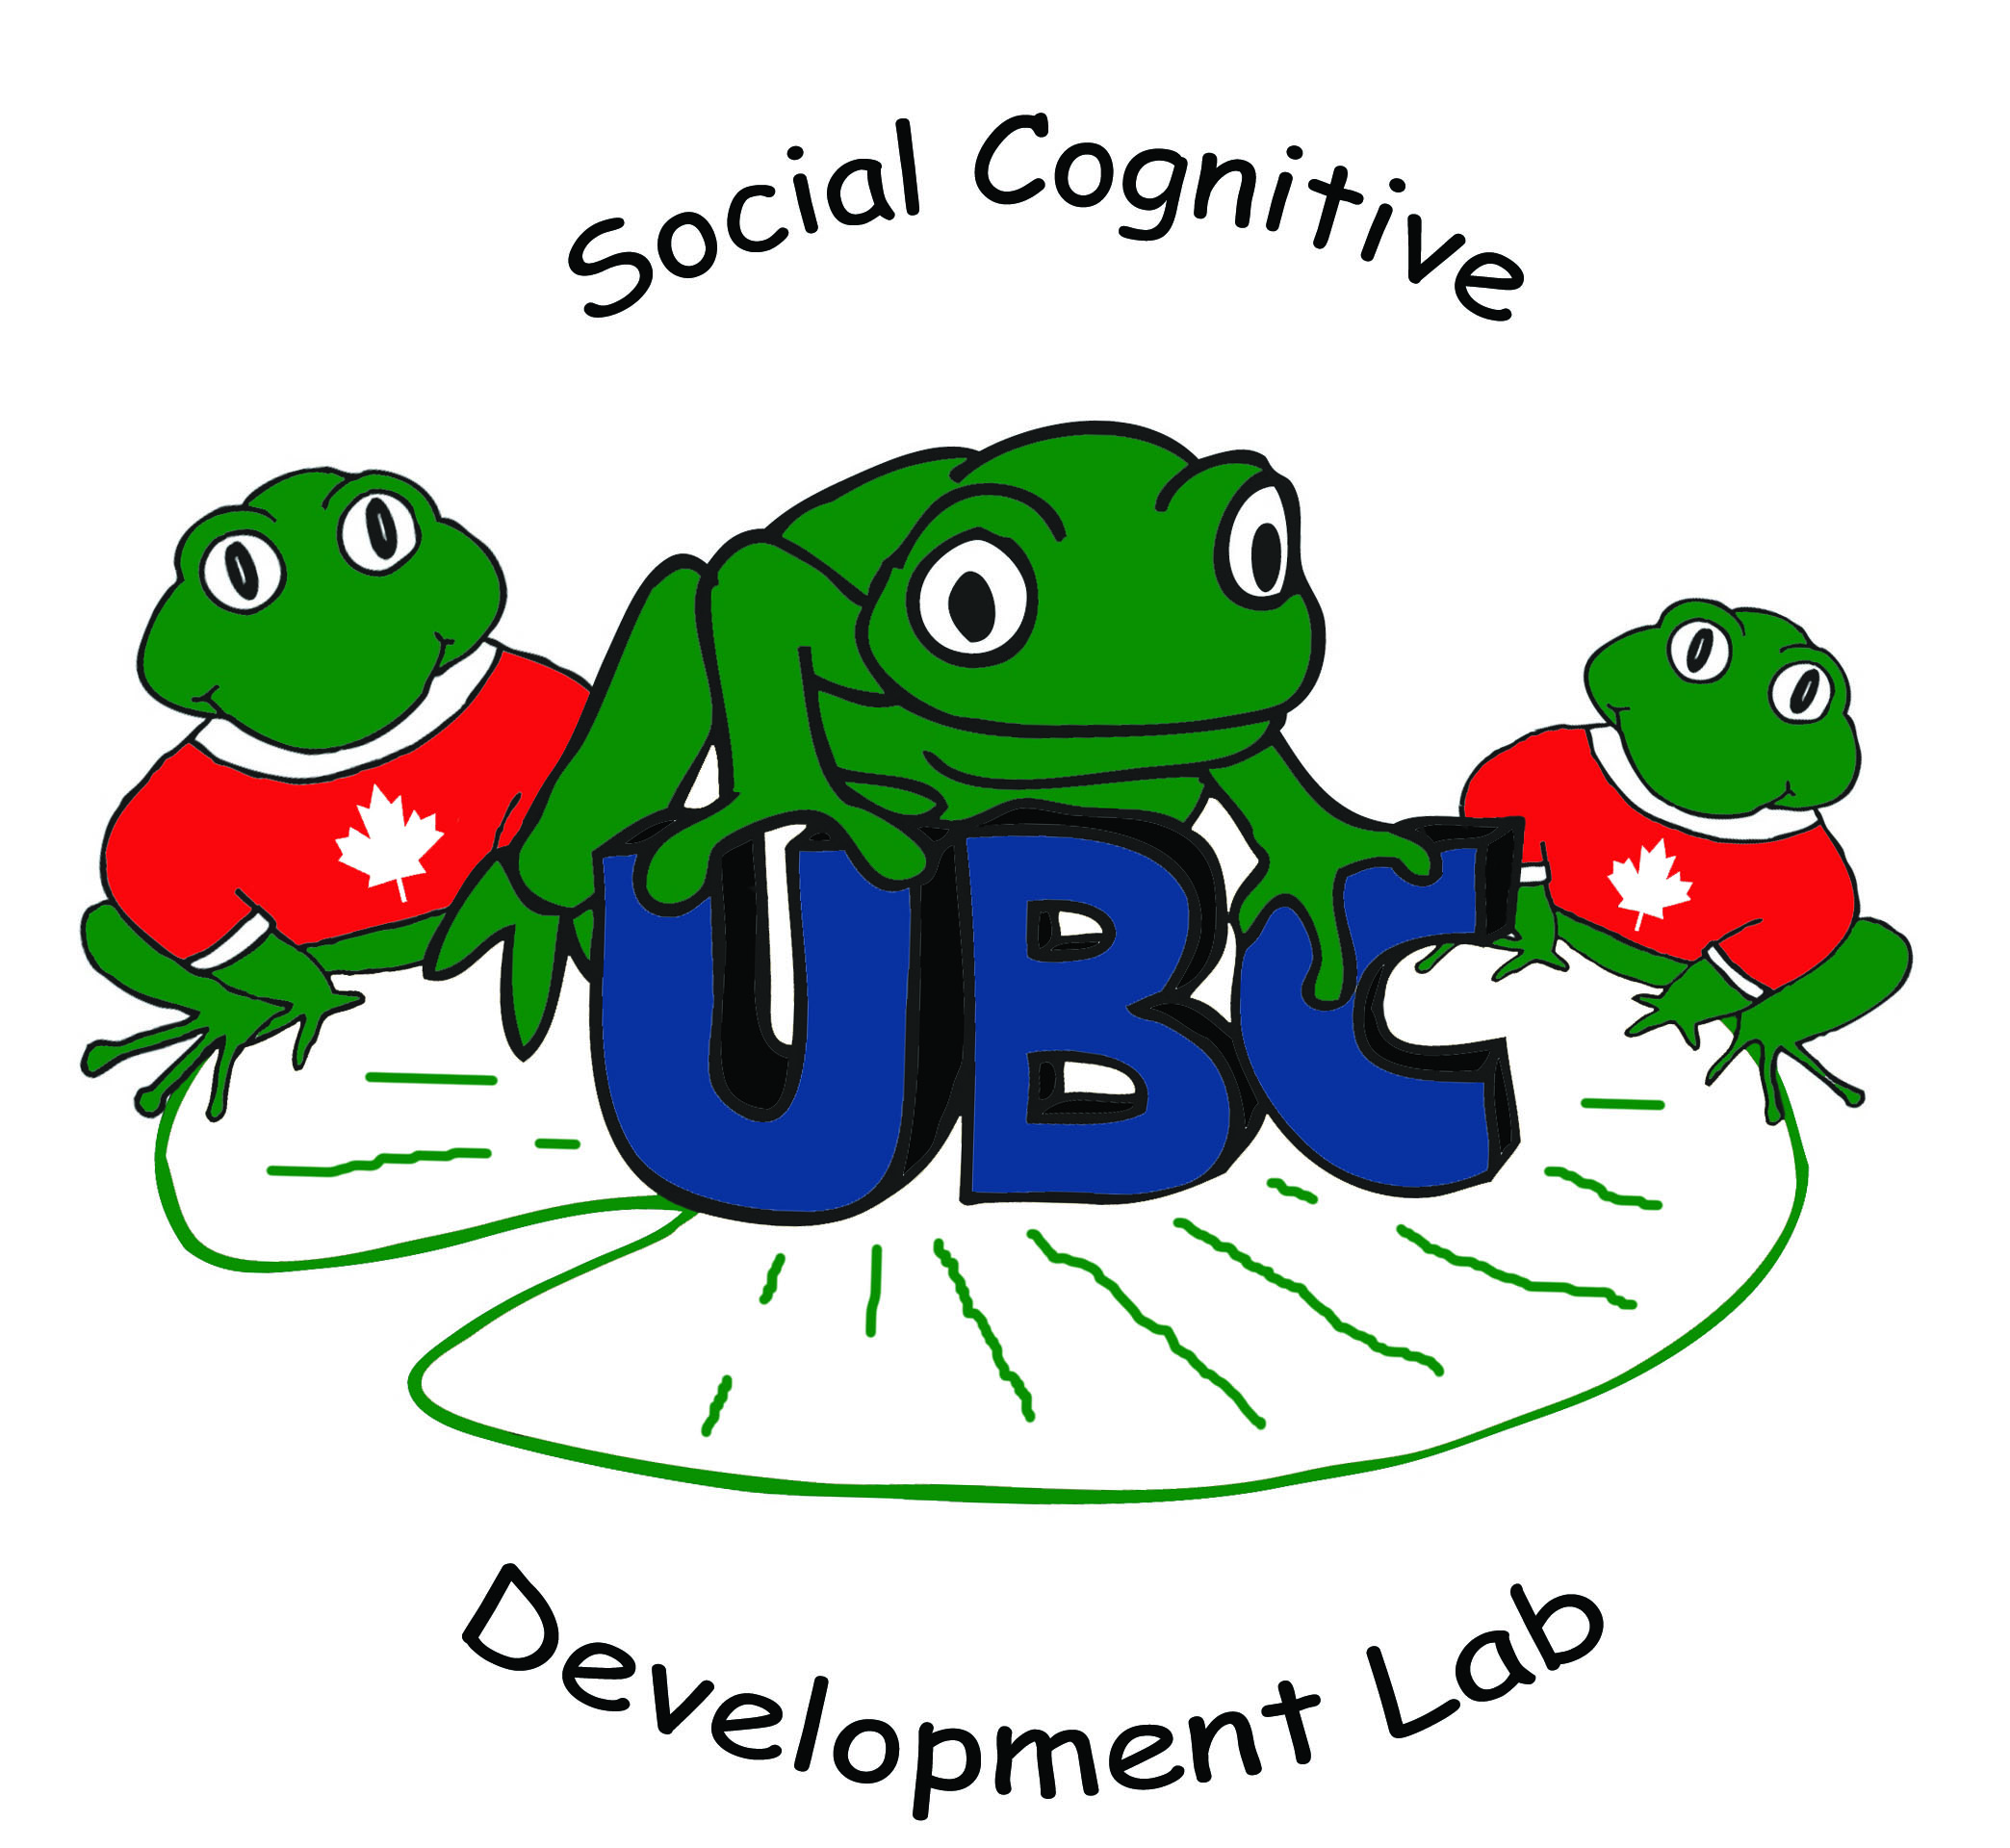 Social Cognitive Development Centre